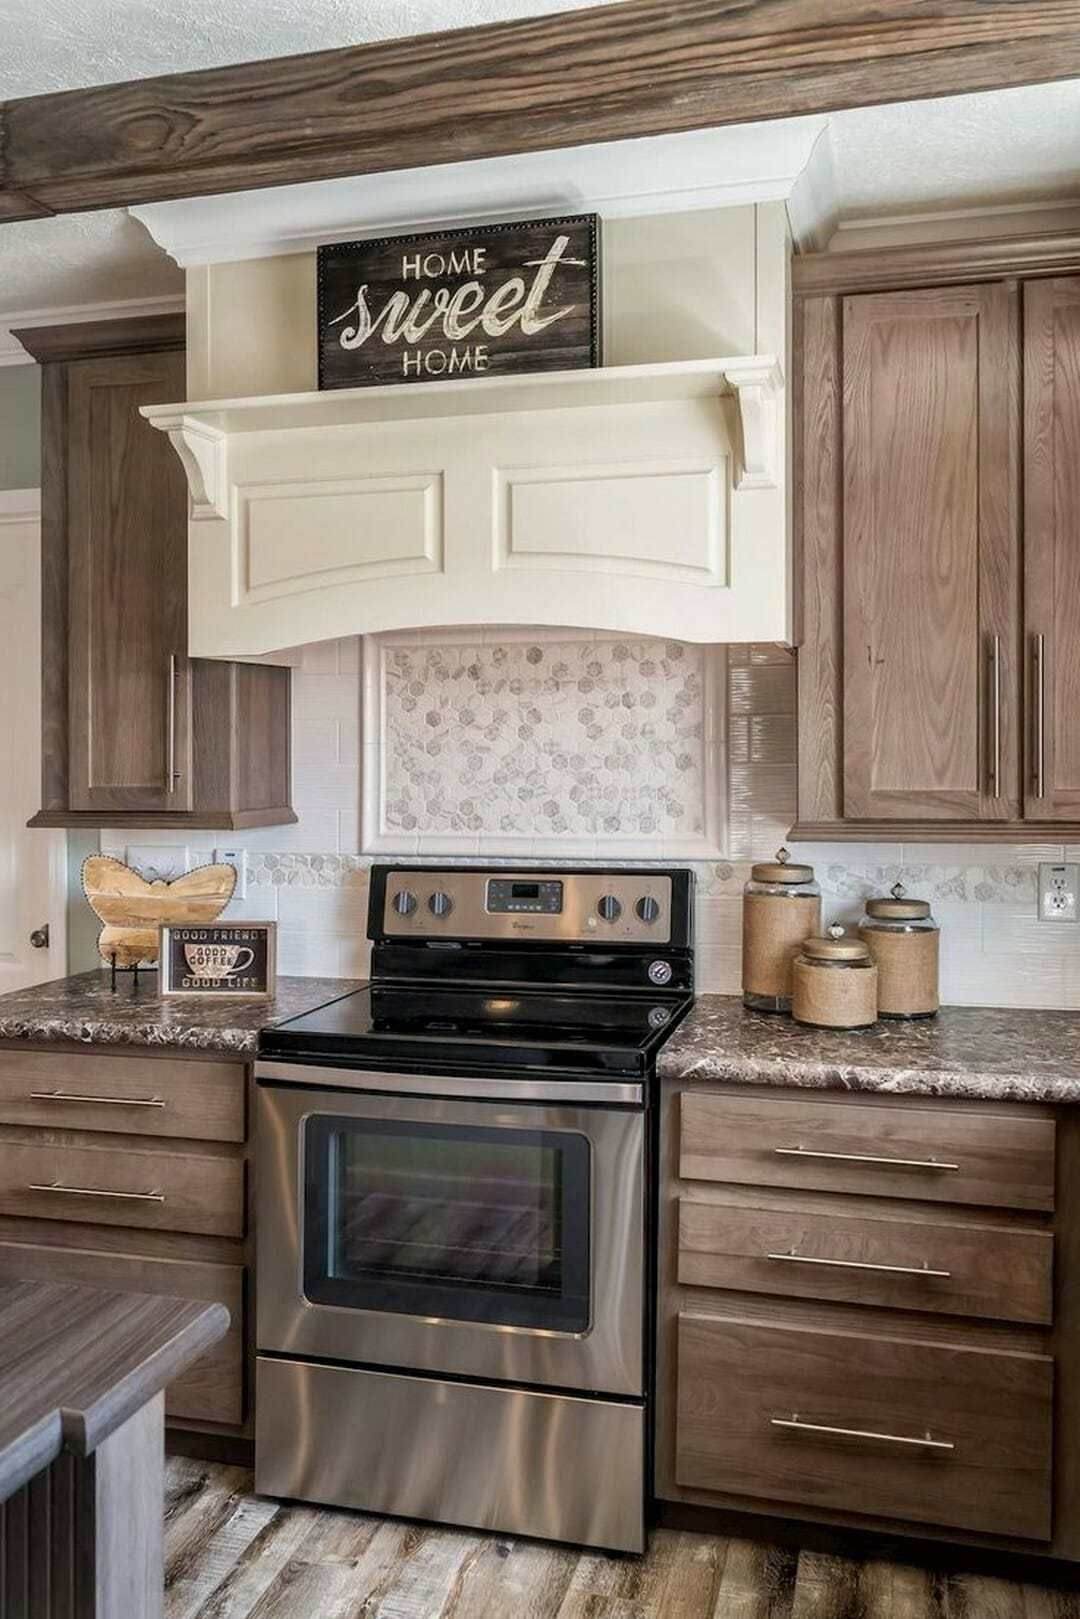 26 best ideas for a farmhouse kitchen cabinets 5 in 2019 farmhouse kitchen cabinets kitchen on farmhouse kitchen cabinets id=34573